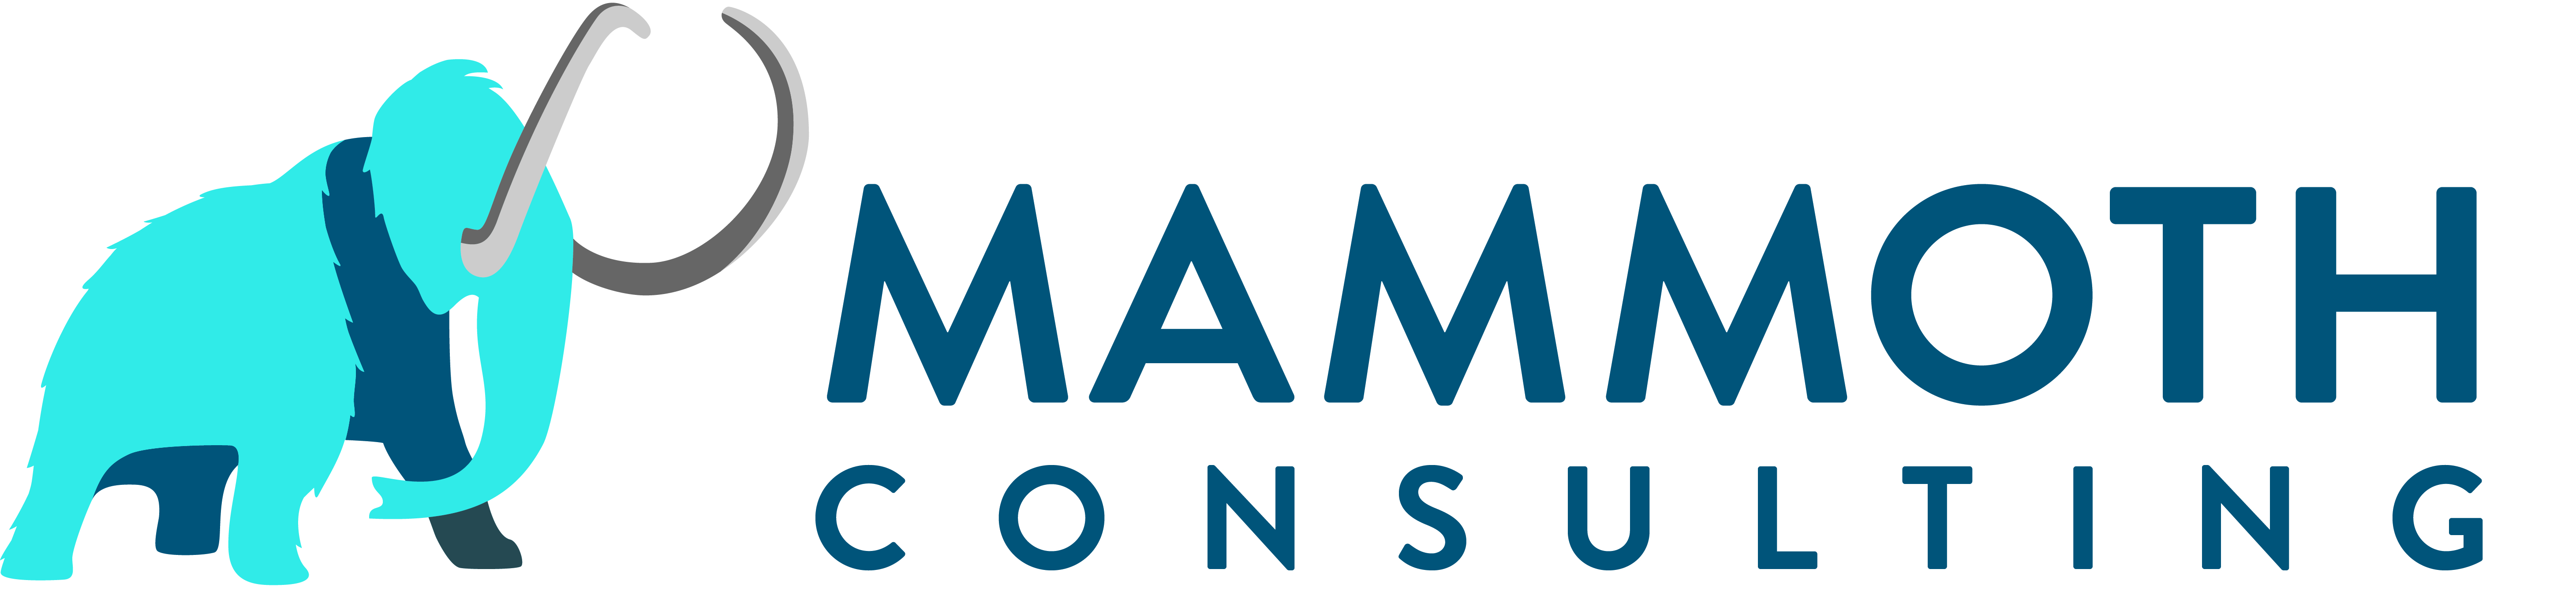 Mammoth Consulting